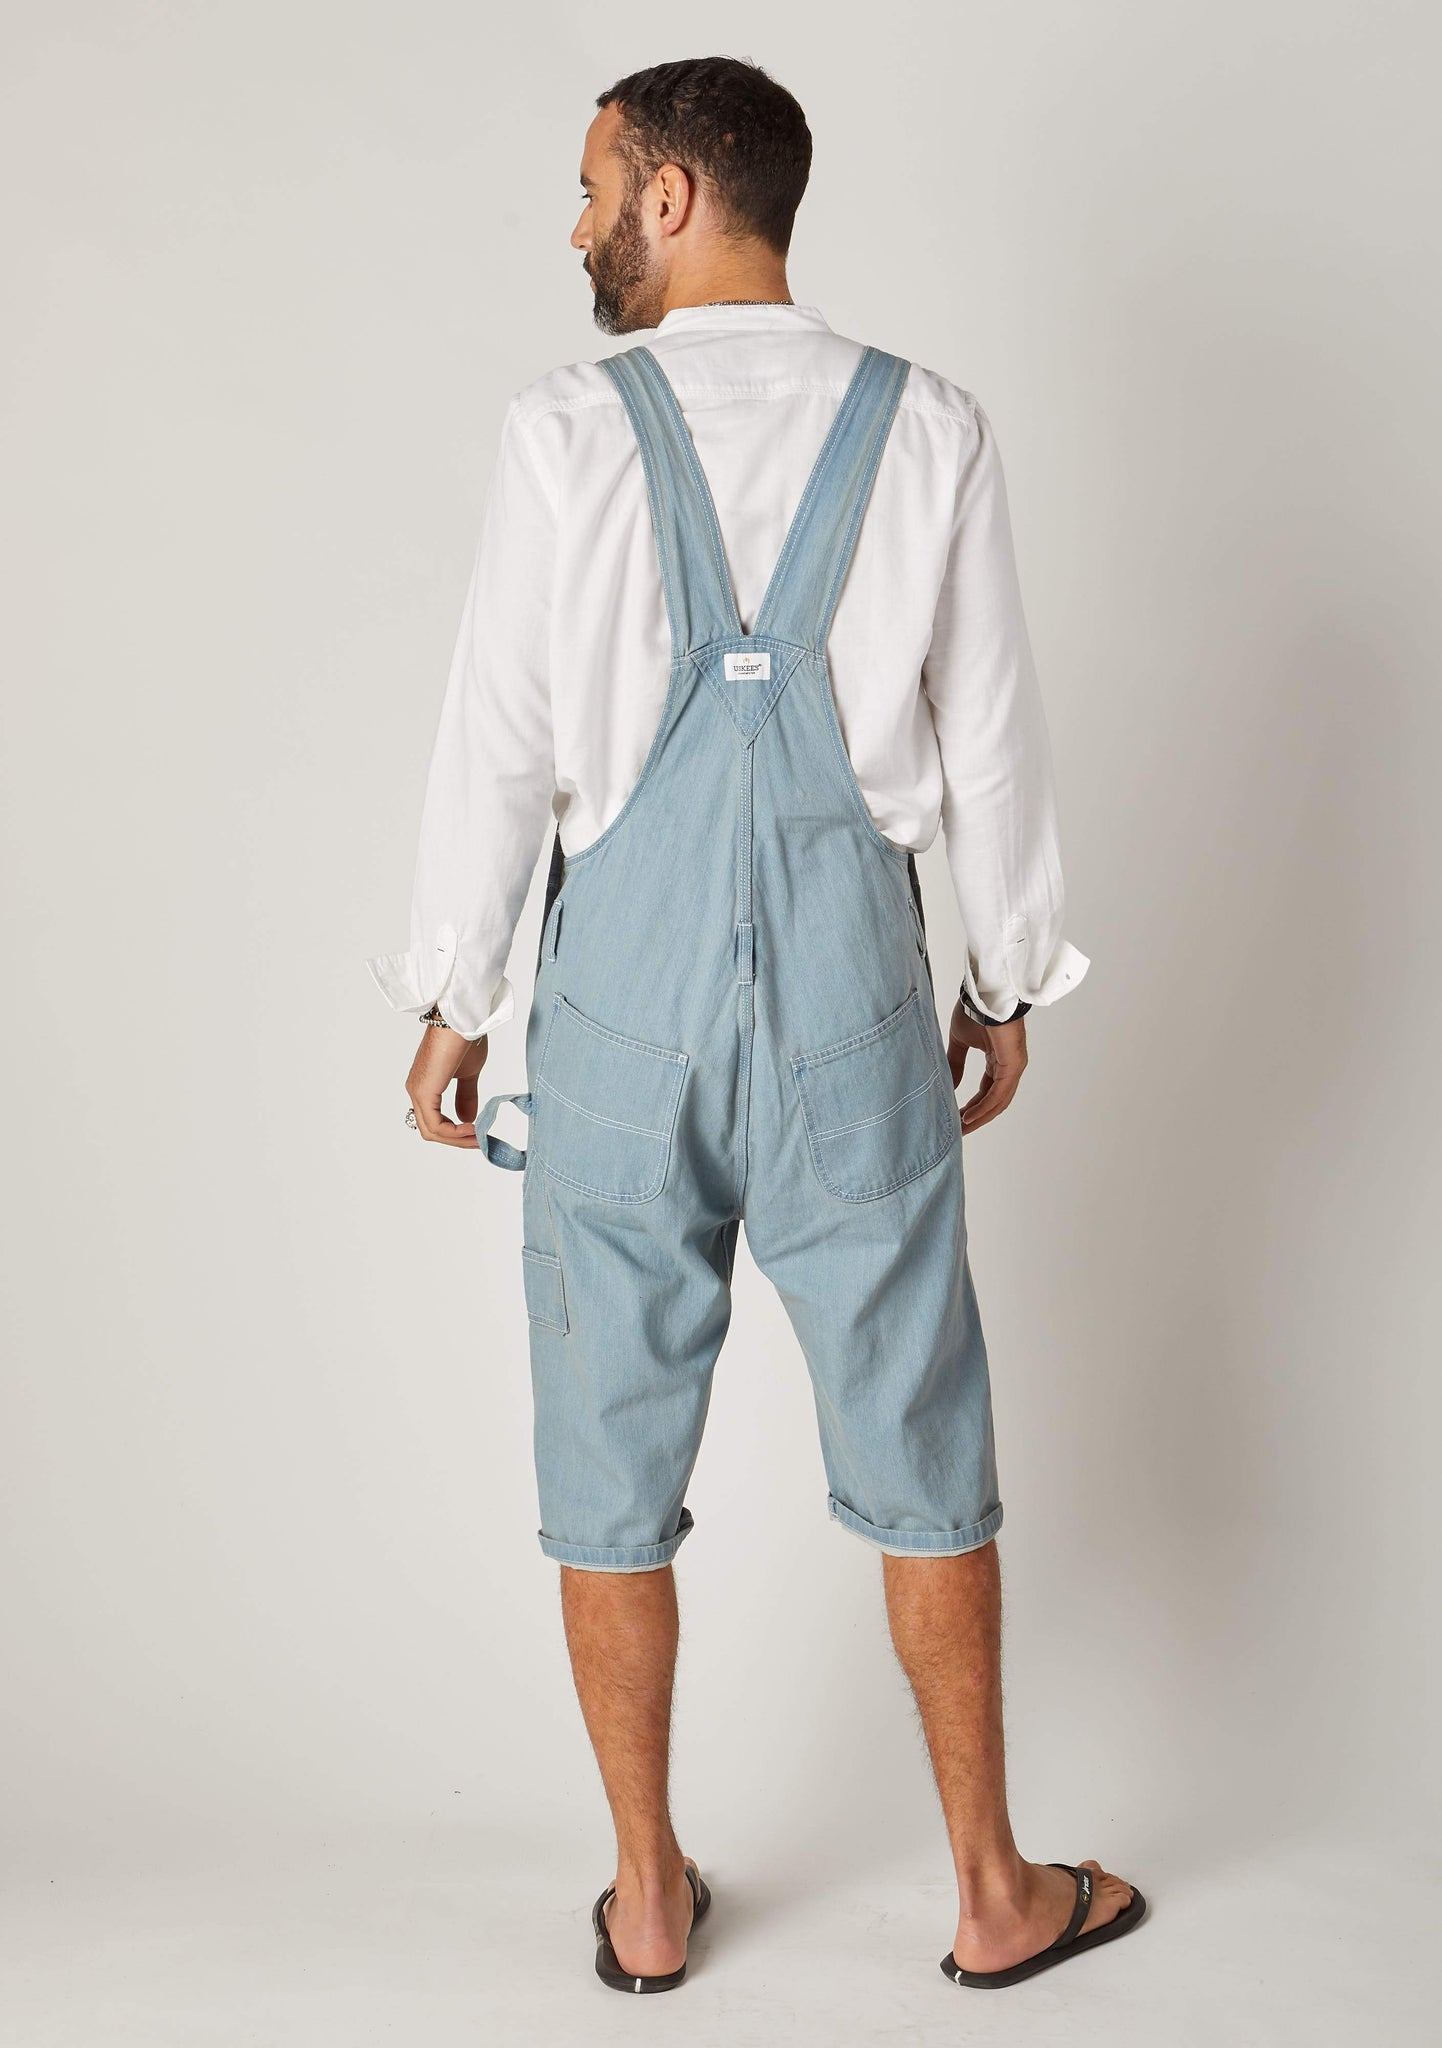 Rear pose looking left, wearing 'Blake' brand pale wash bib overalls shorts from Dungarees Online.